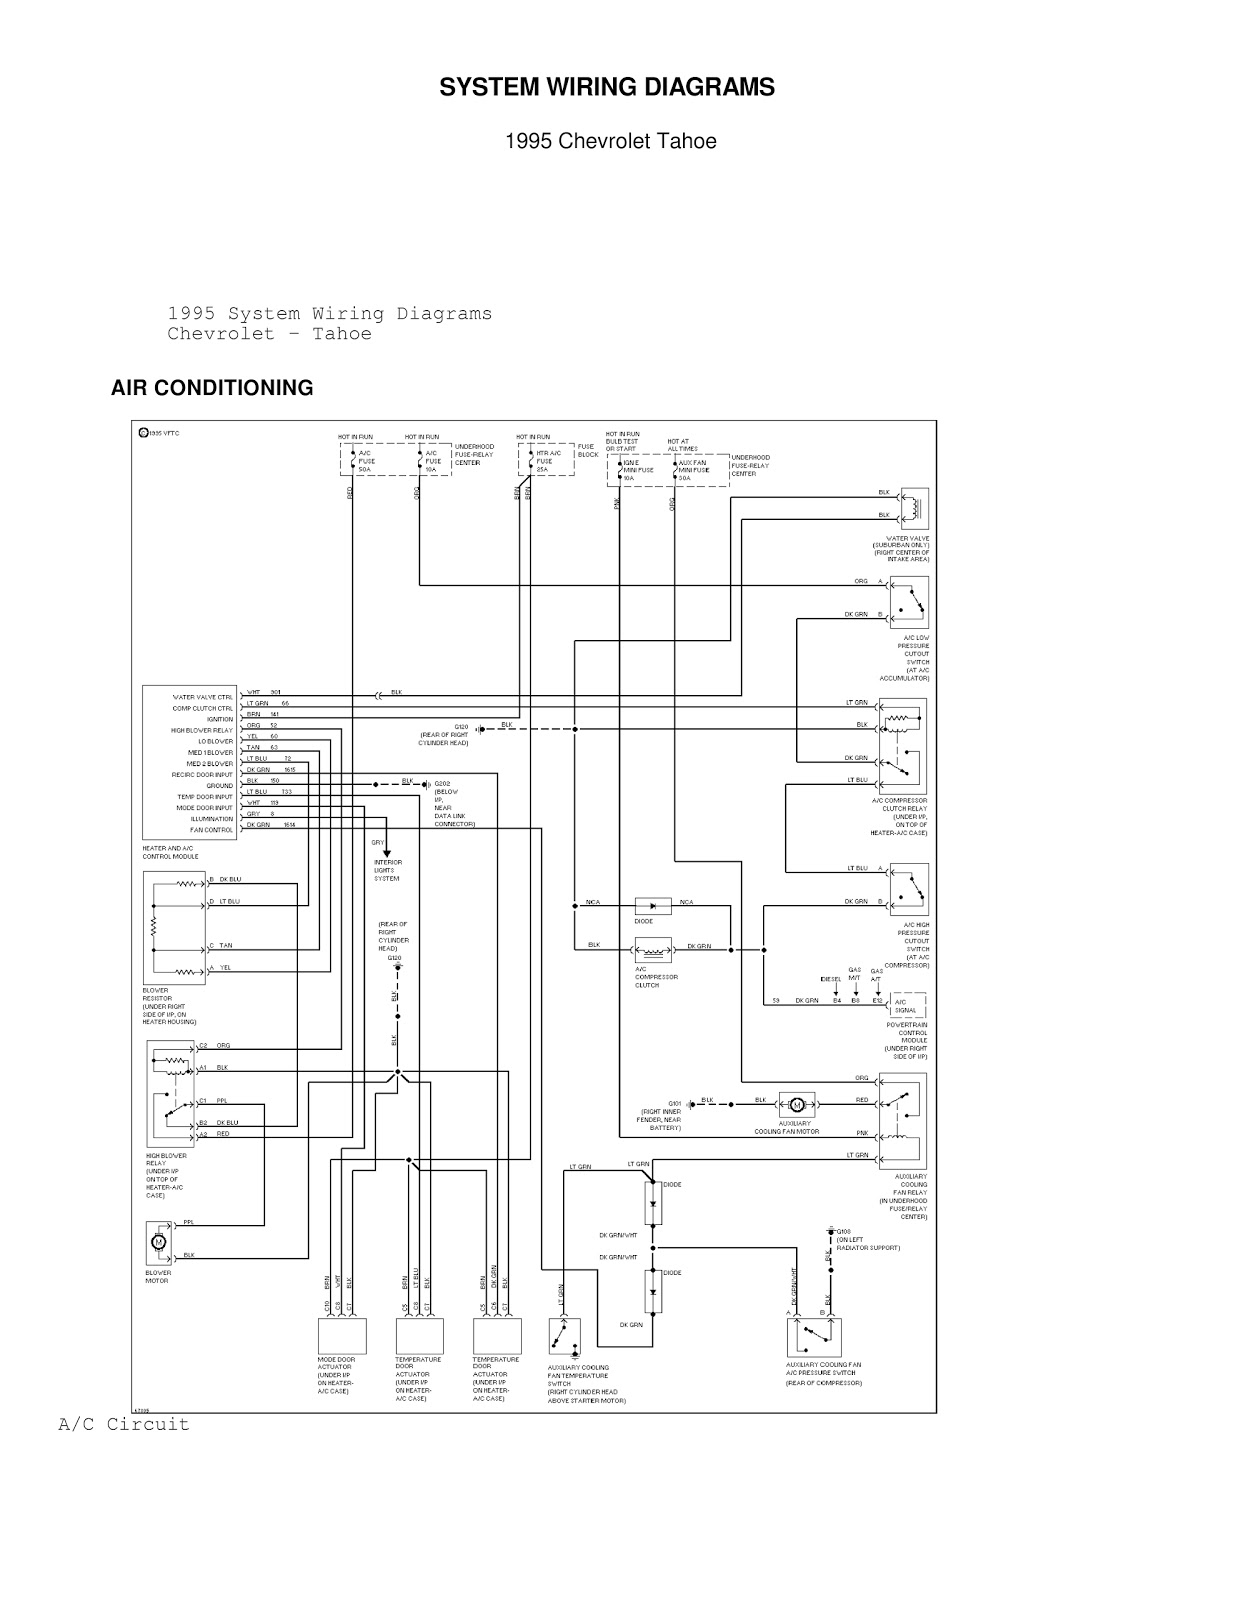 small resolution of 1995 chevrolet tahoe system wiring diagrams air 1995 chevy suburban wiring diagram on a fuel pump wiring schematics for 95 tahoe